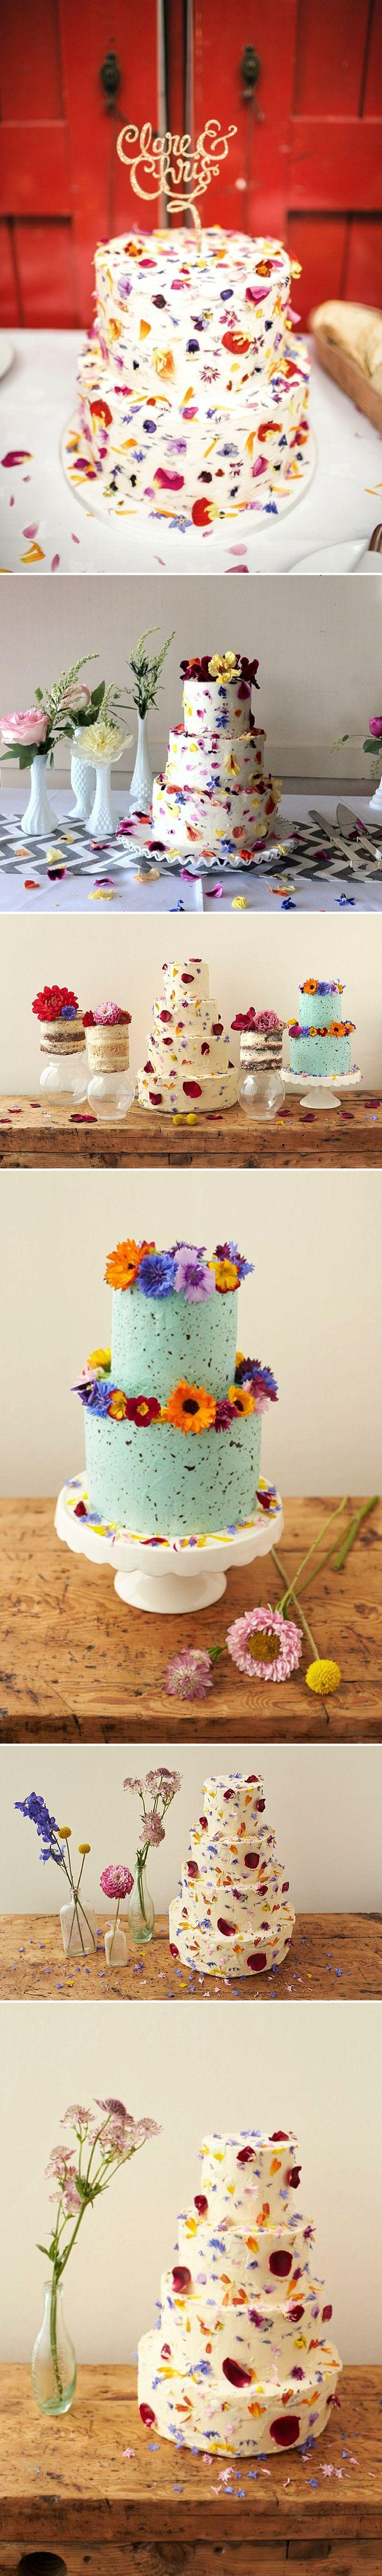 Mariage - How To Decorate A Wedding Or Celebration Cake With Edible Petals - Bee's Bakery